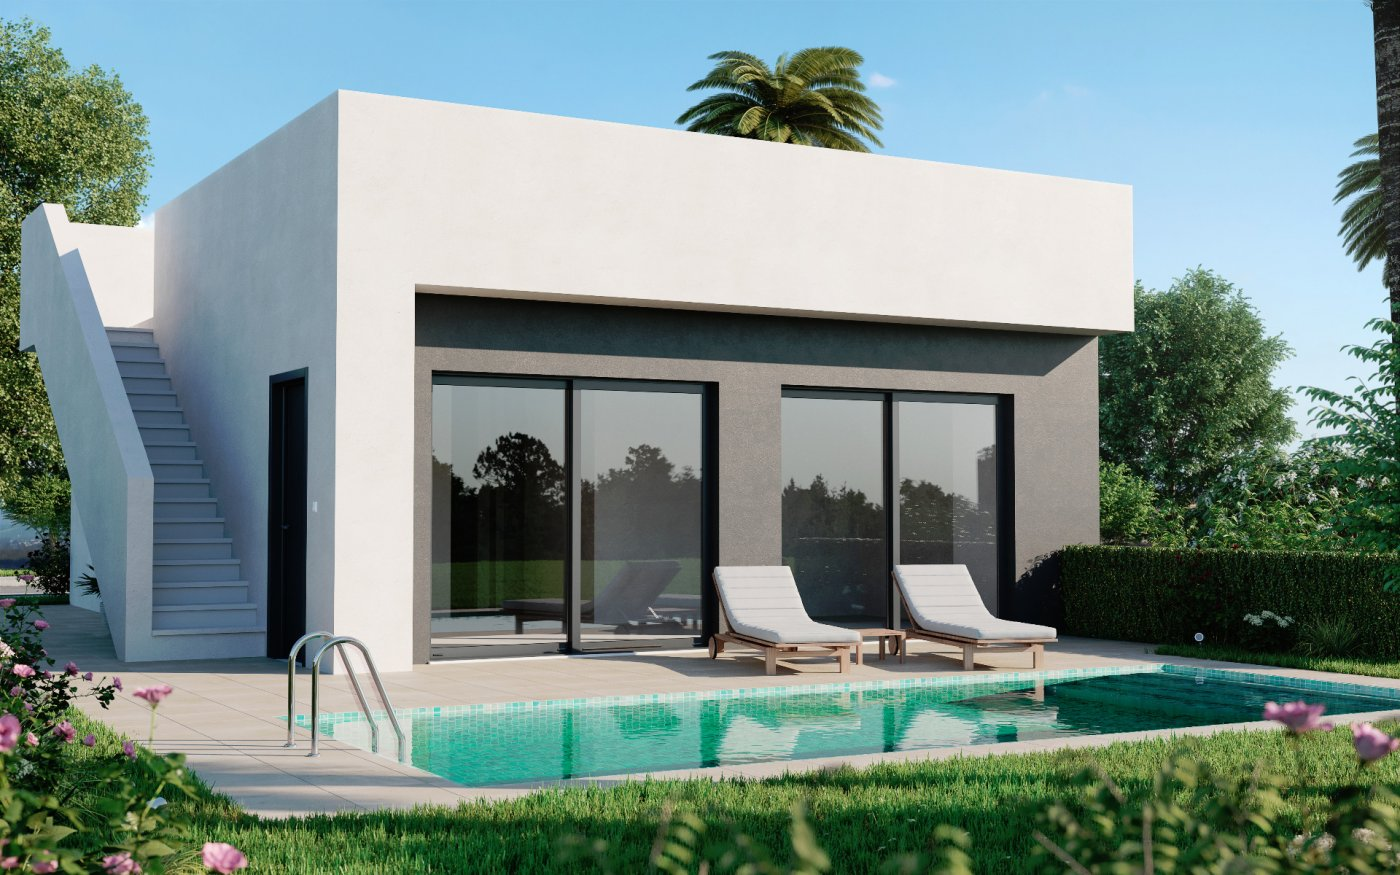 Villa - For Sale - Alhama de Murcia - CONDADO DE ALHAMA GOLF RESORT